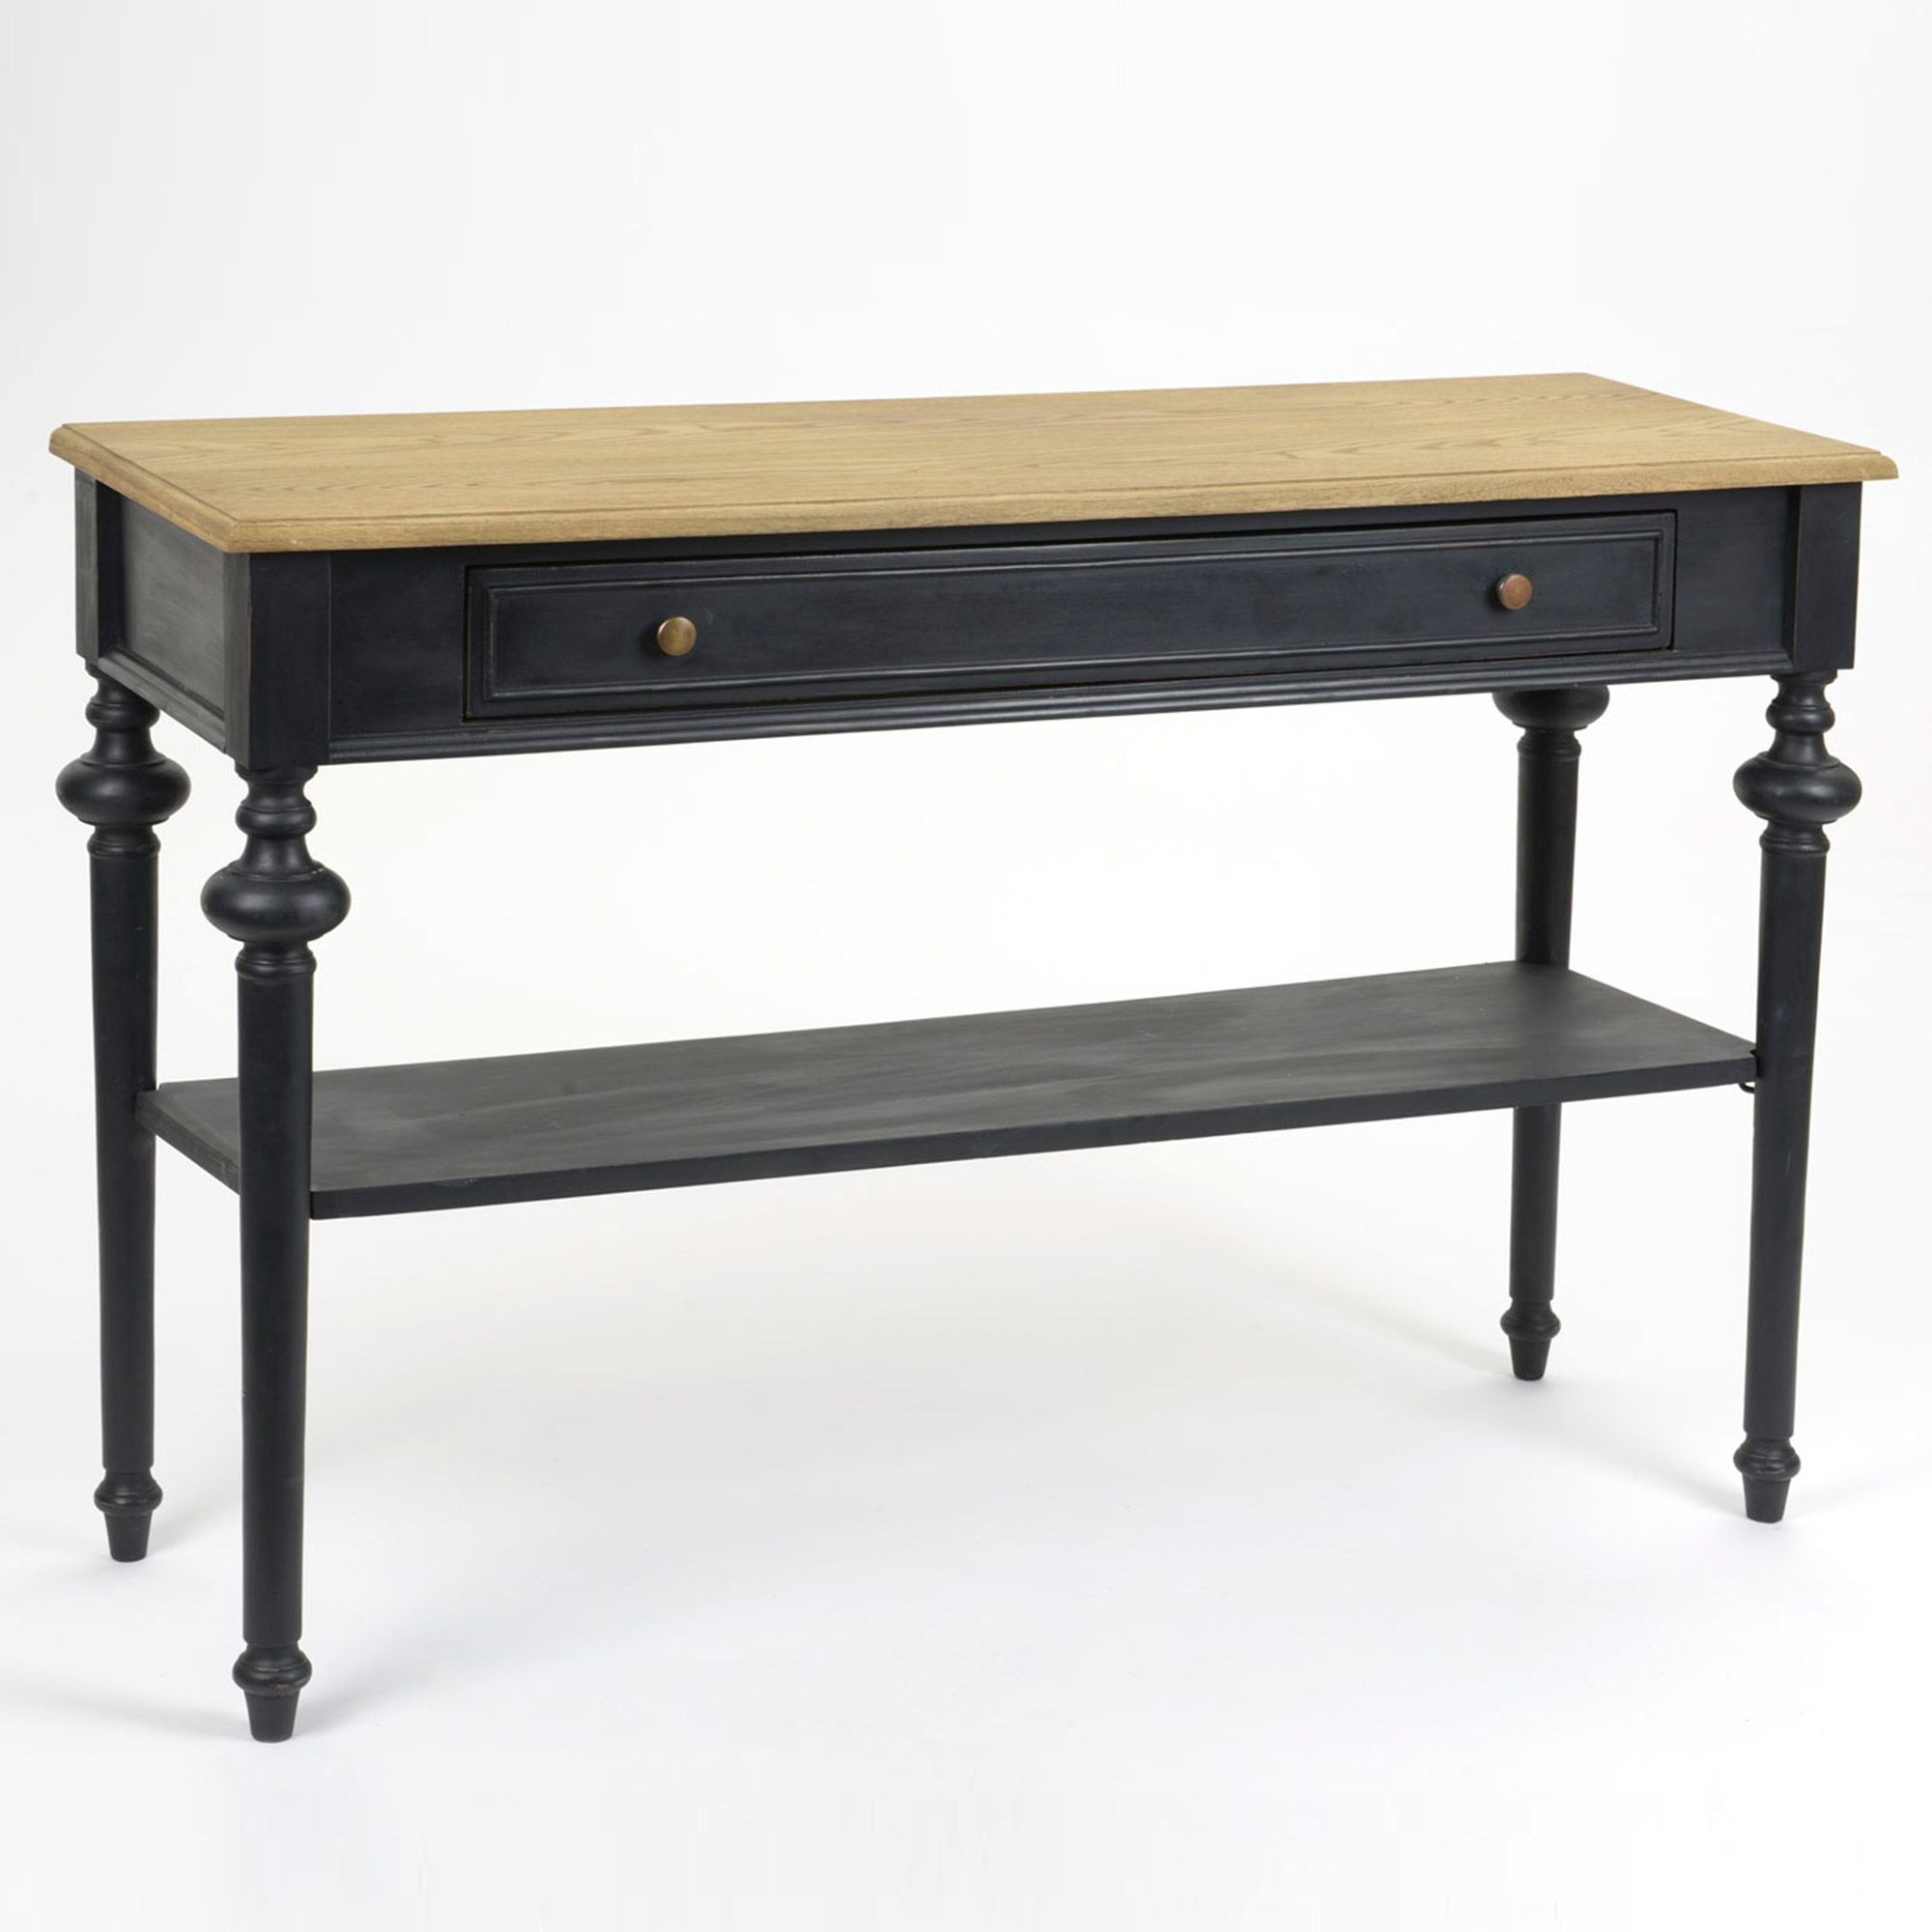 console 2 tiroirs 1 tag re bois bicolore noir et. Black Bedroom Furniture Sets. Home Design Ideas